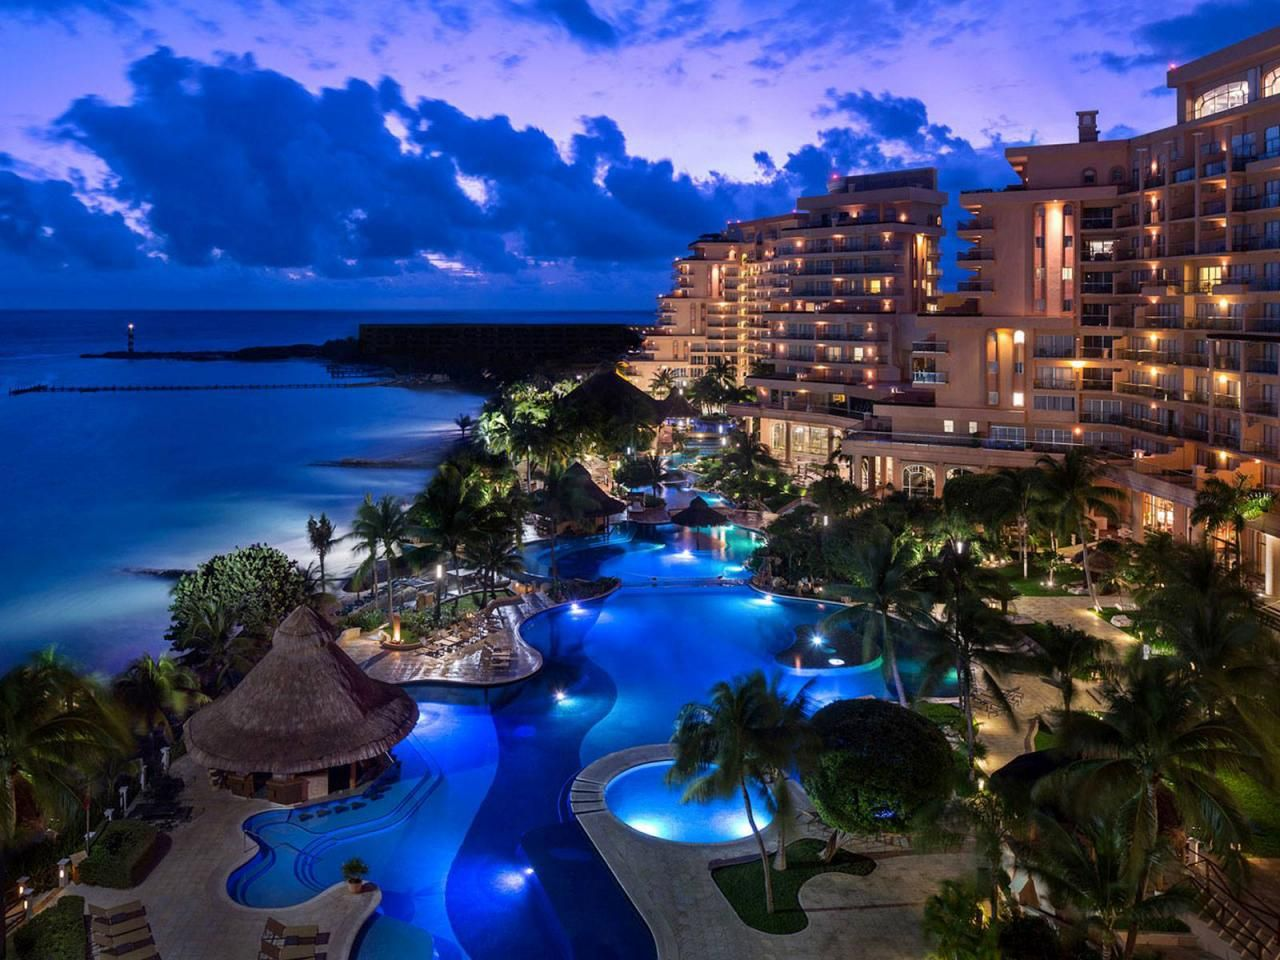 Fiesta americana grand coral beach es en cacun de mexico for All inclusive resorts in